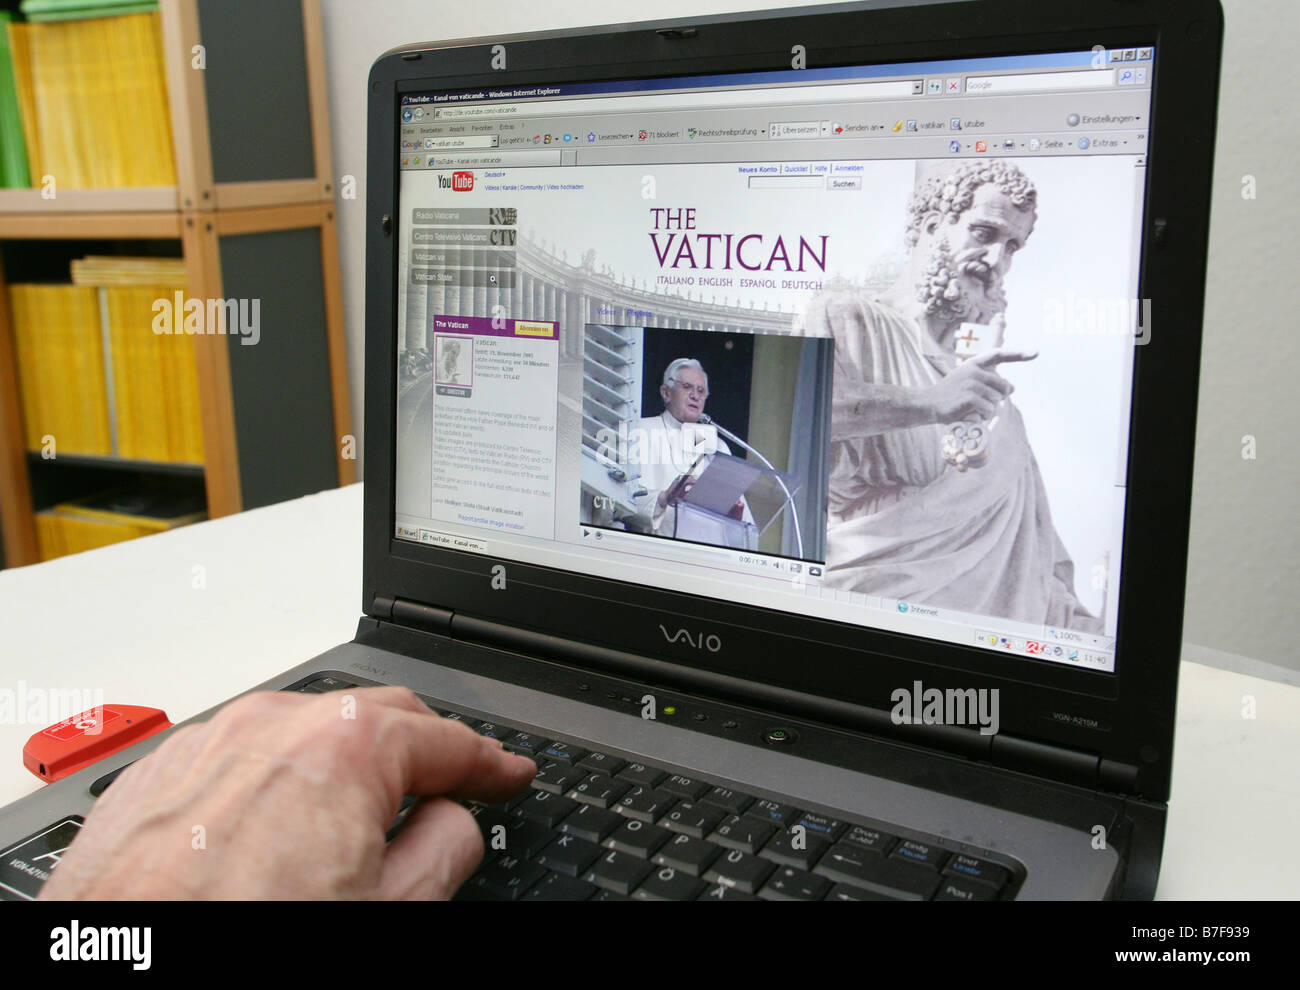 screenshot of the vaticans internet platform at youtube shows Pope Benedikt XVI. - Stock Image